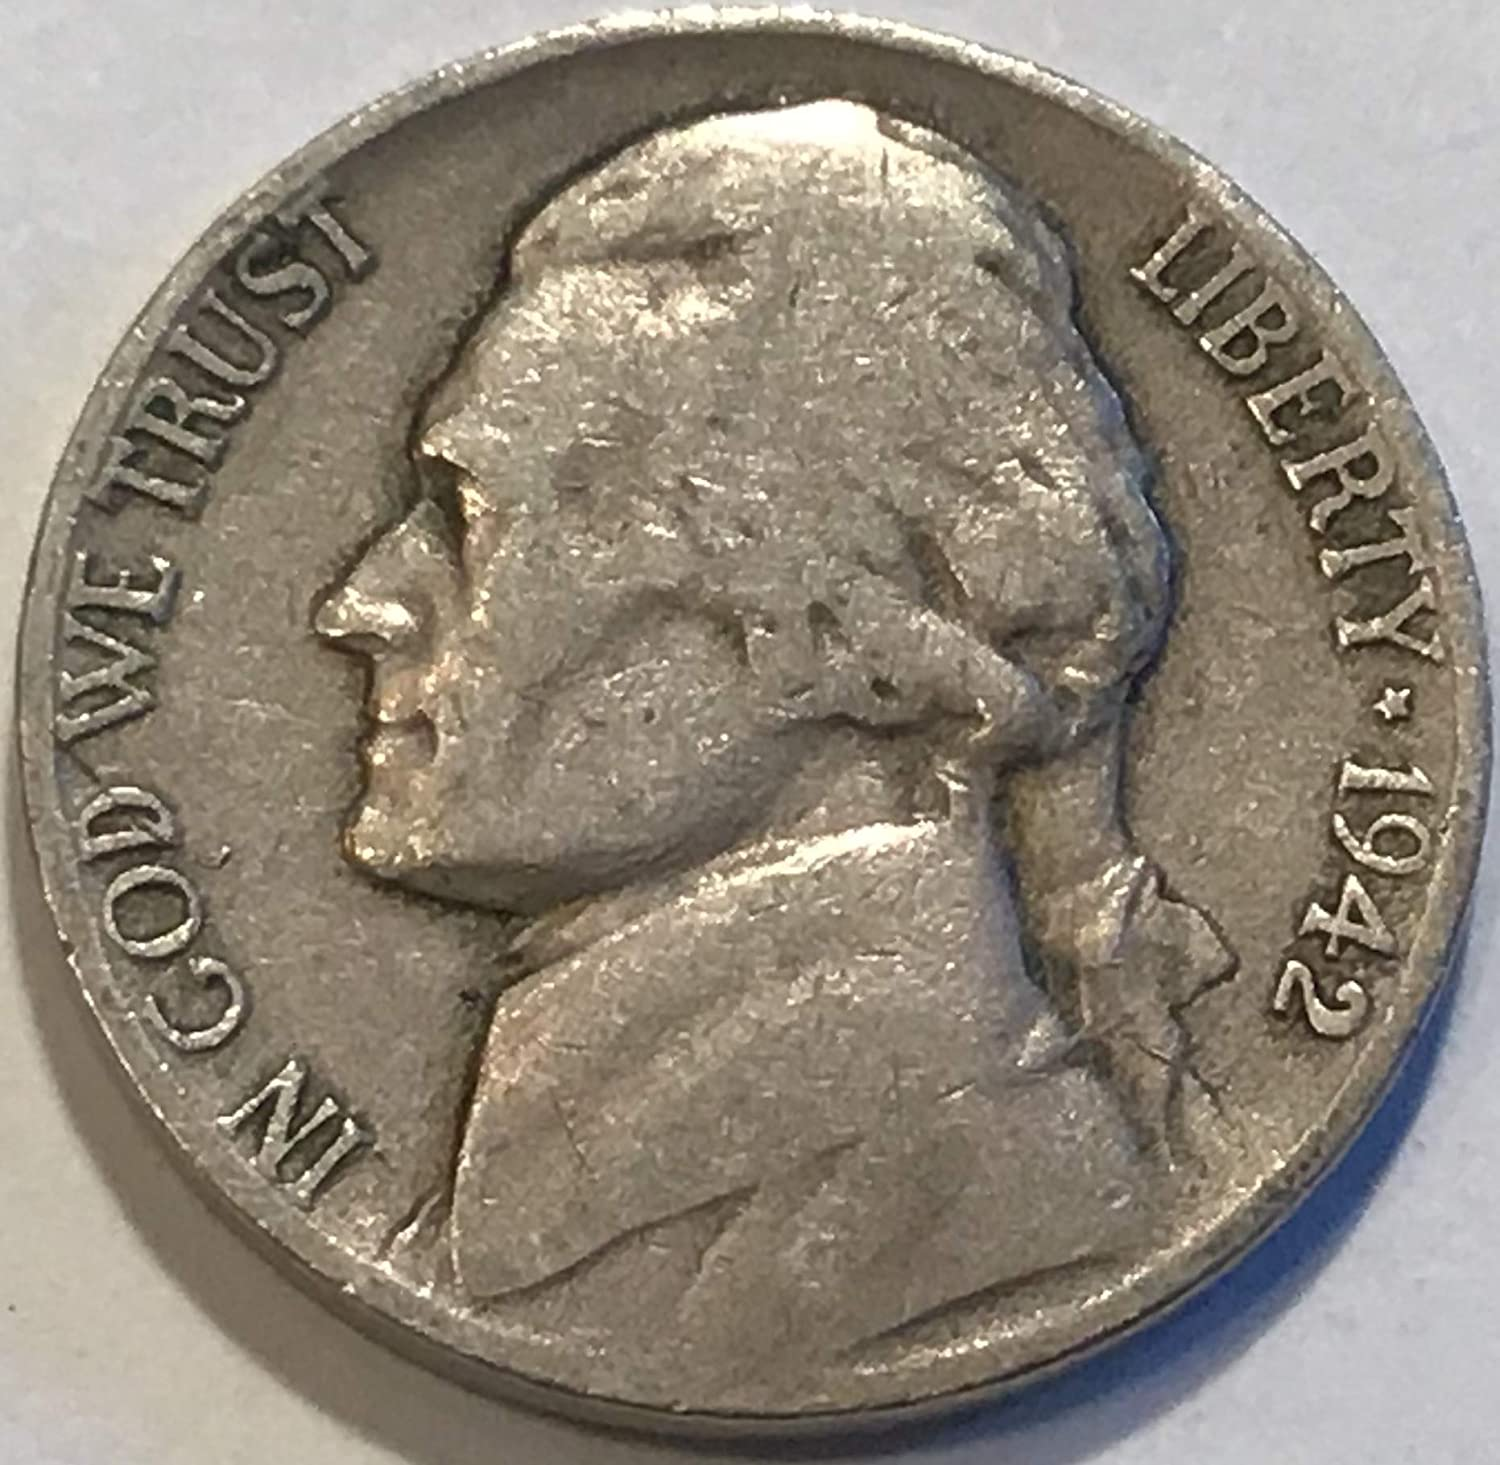 2 COINS 1968 D /& S JEFFERSON NICKEL SET *MINT CELLO*  **FREE SHIPPING**